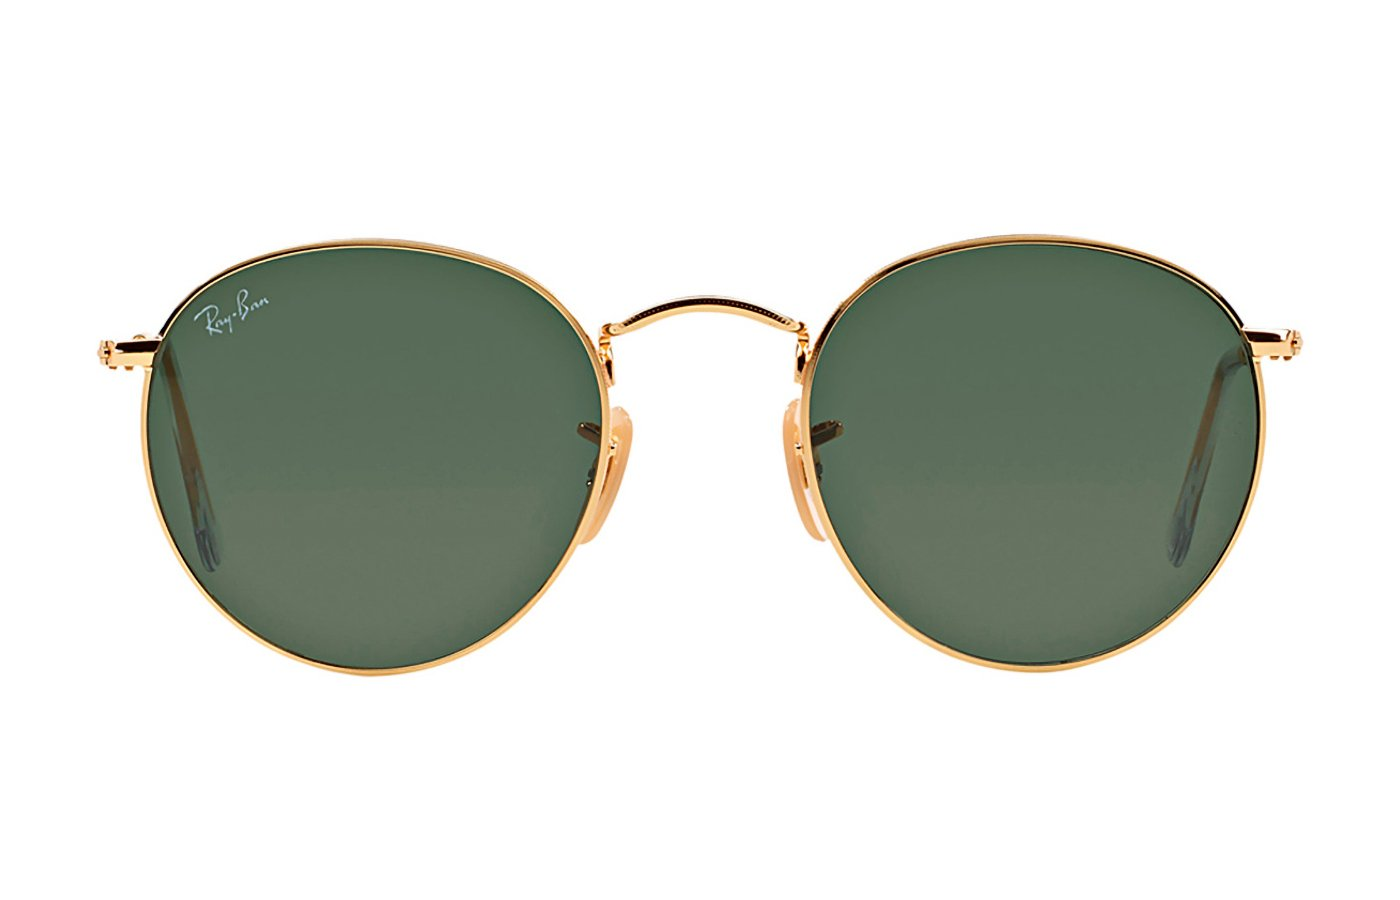 RAY-BAN ROUND METAL 0RB3447 50 001 ARISTA